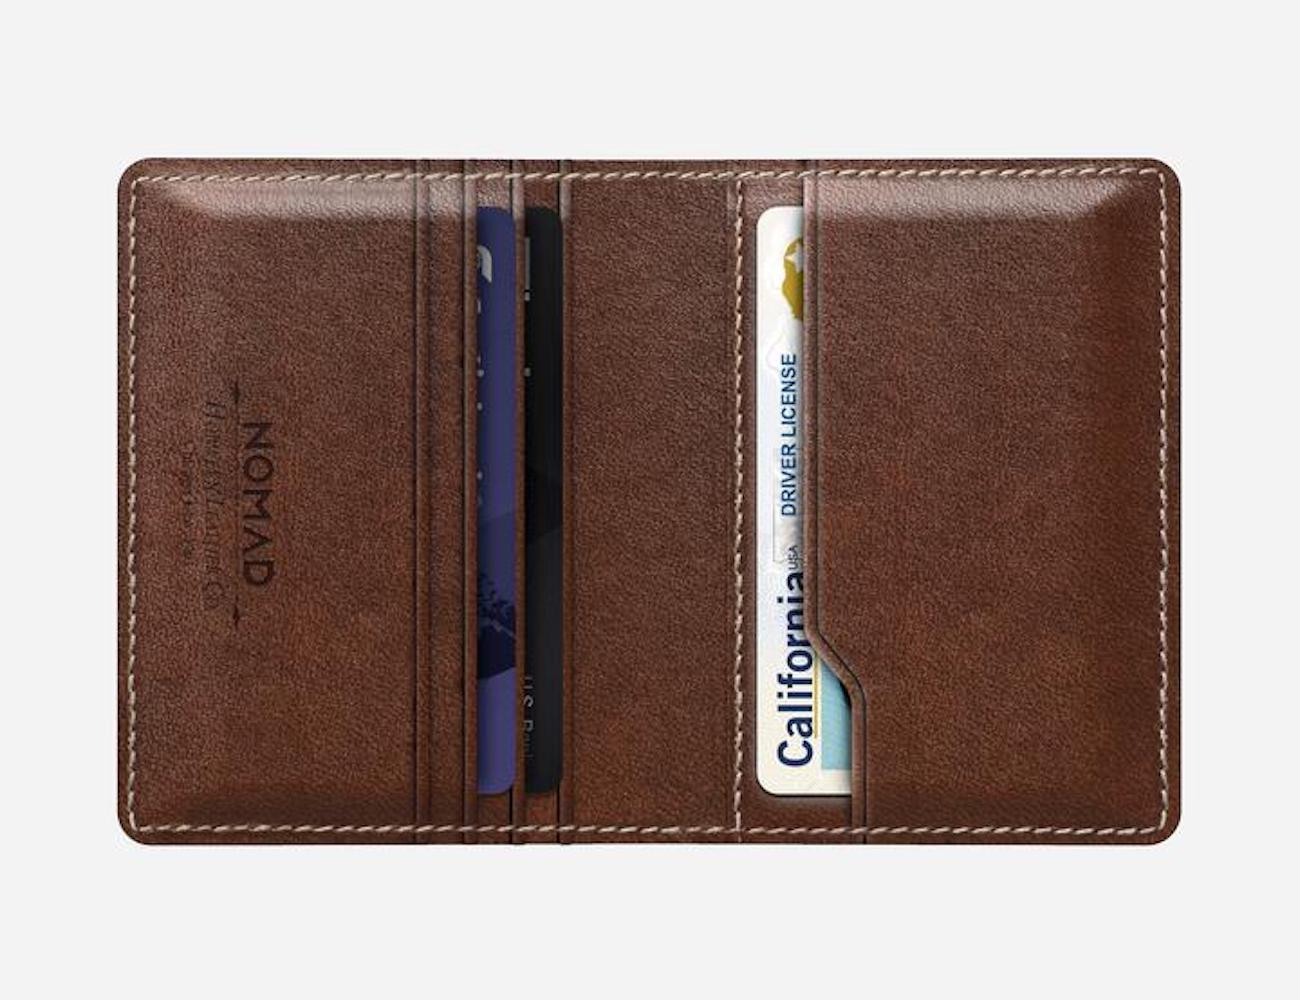 The Tile Slim Tracking Wallet By Nomad Combines Looks And